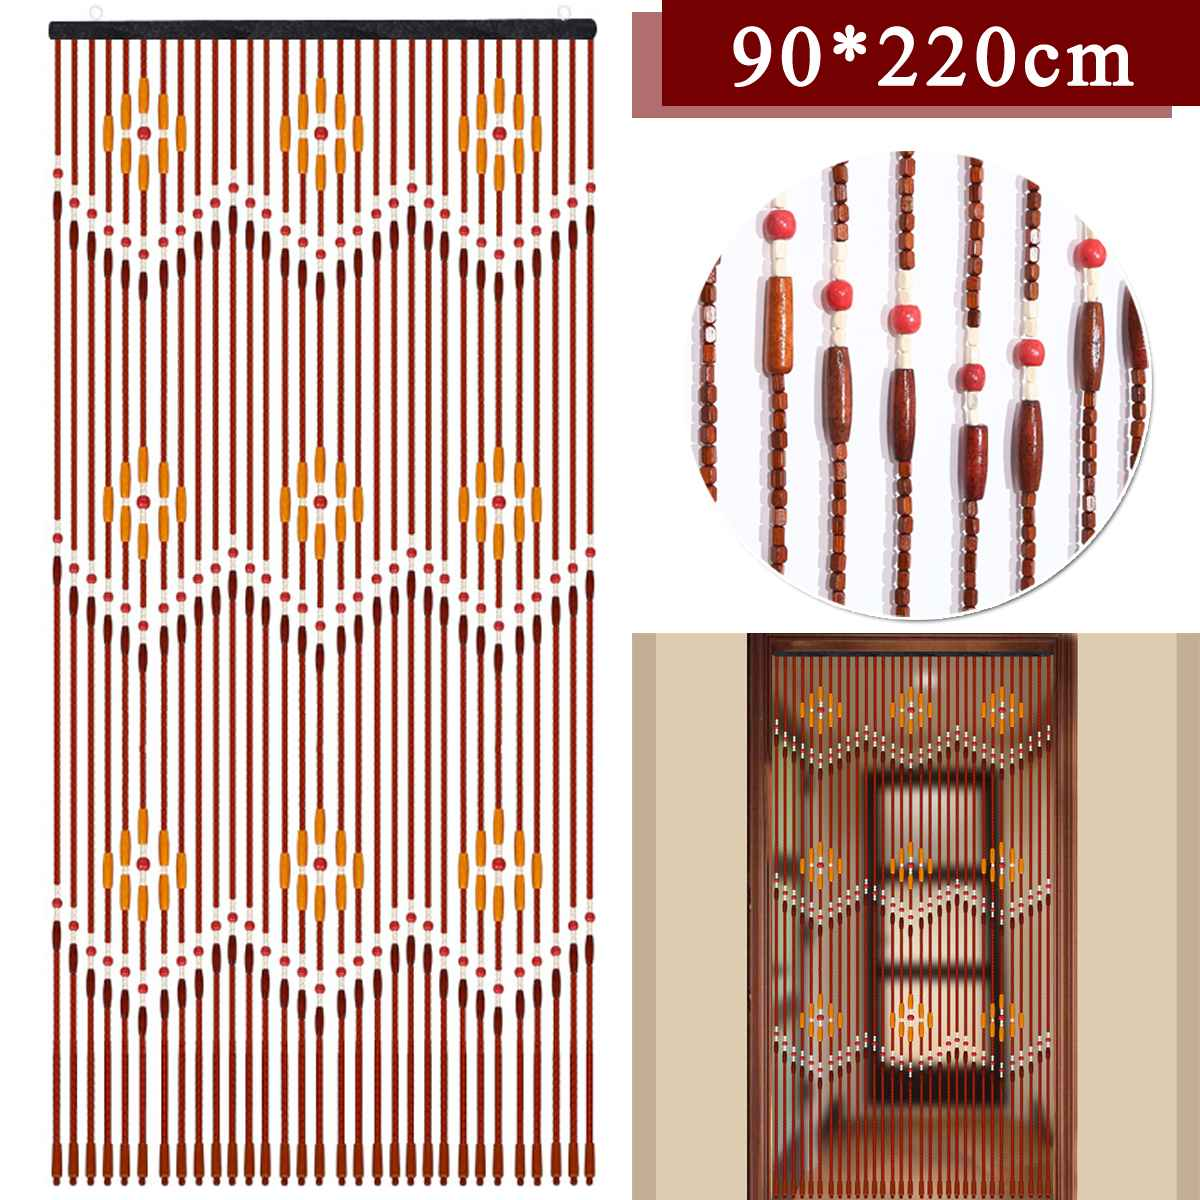 90x220cm 31 Line Wave Wooden Beads Curtain Handmade Fly Screen Wooden Door Curtain Blinds For Porch Bedroom Living Room Divider